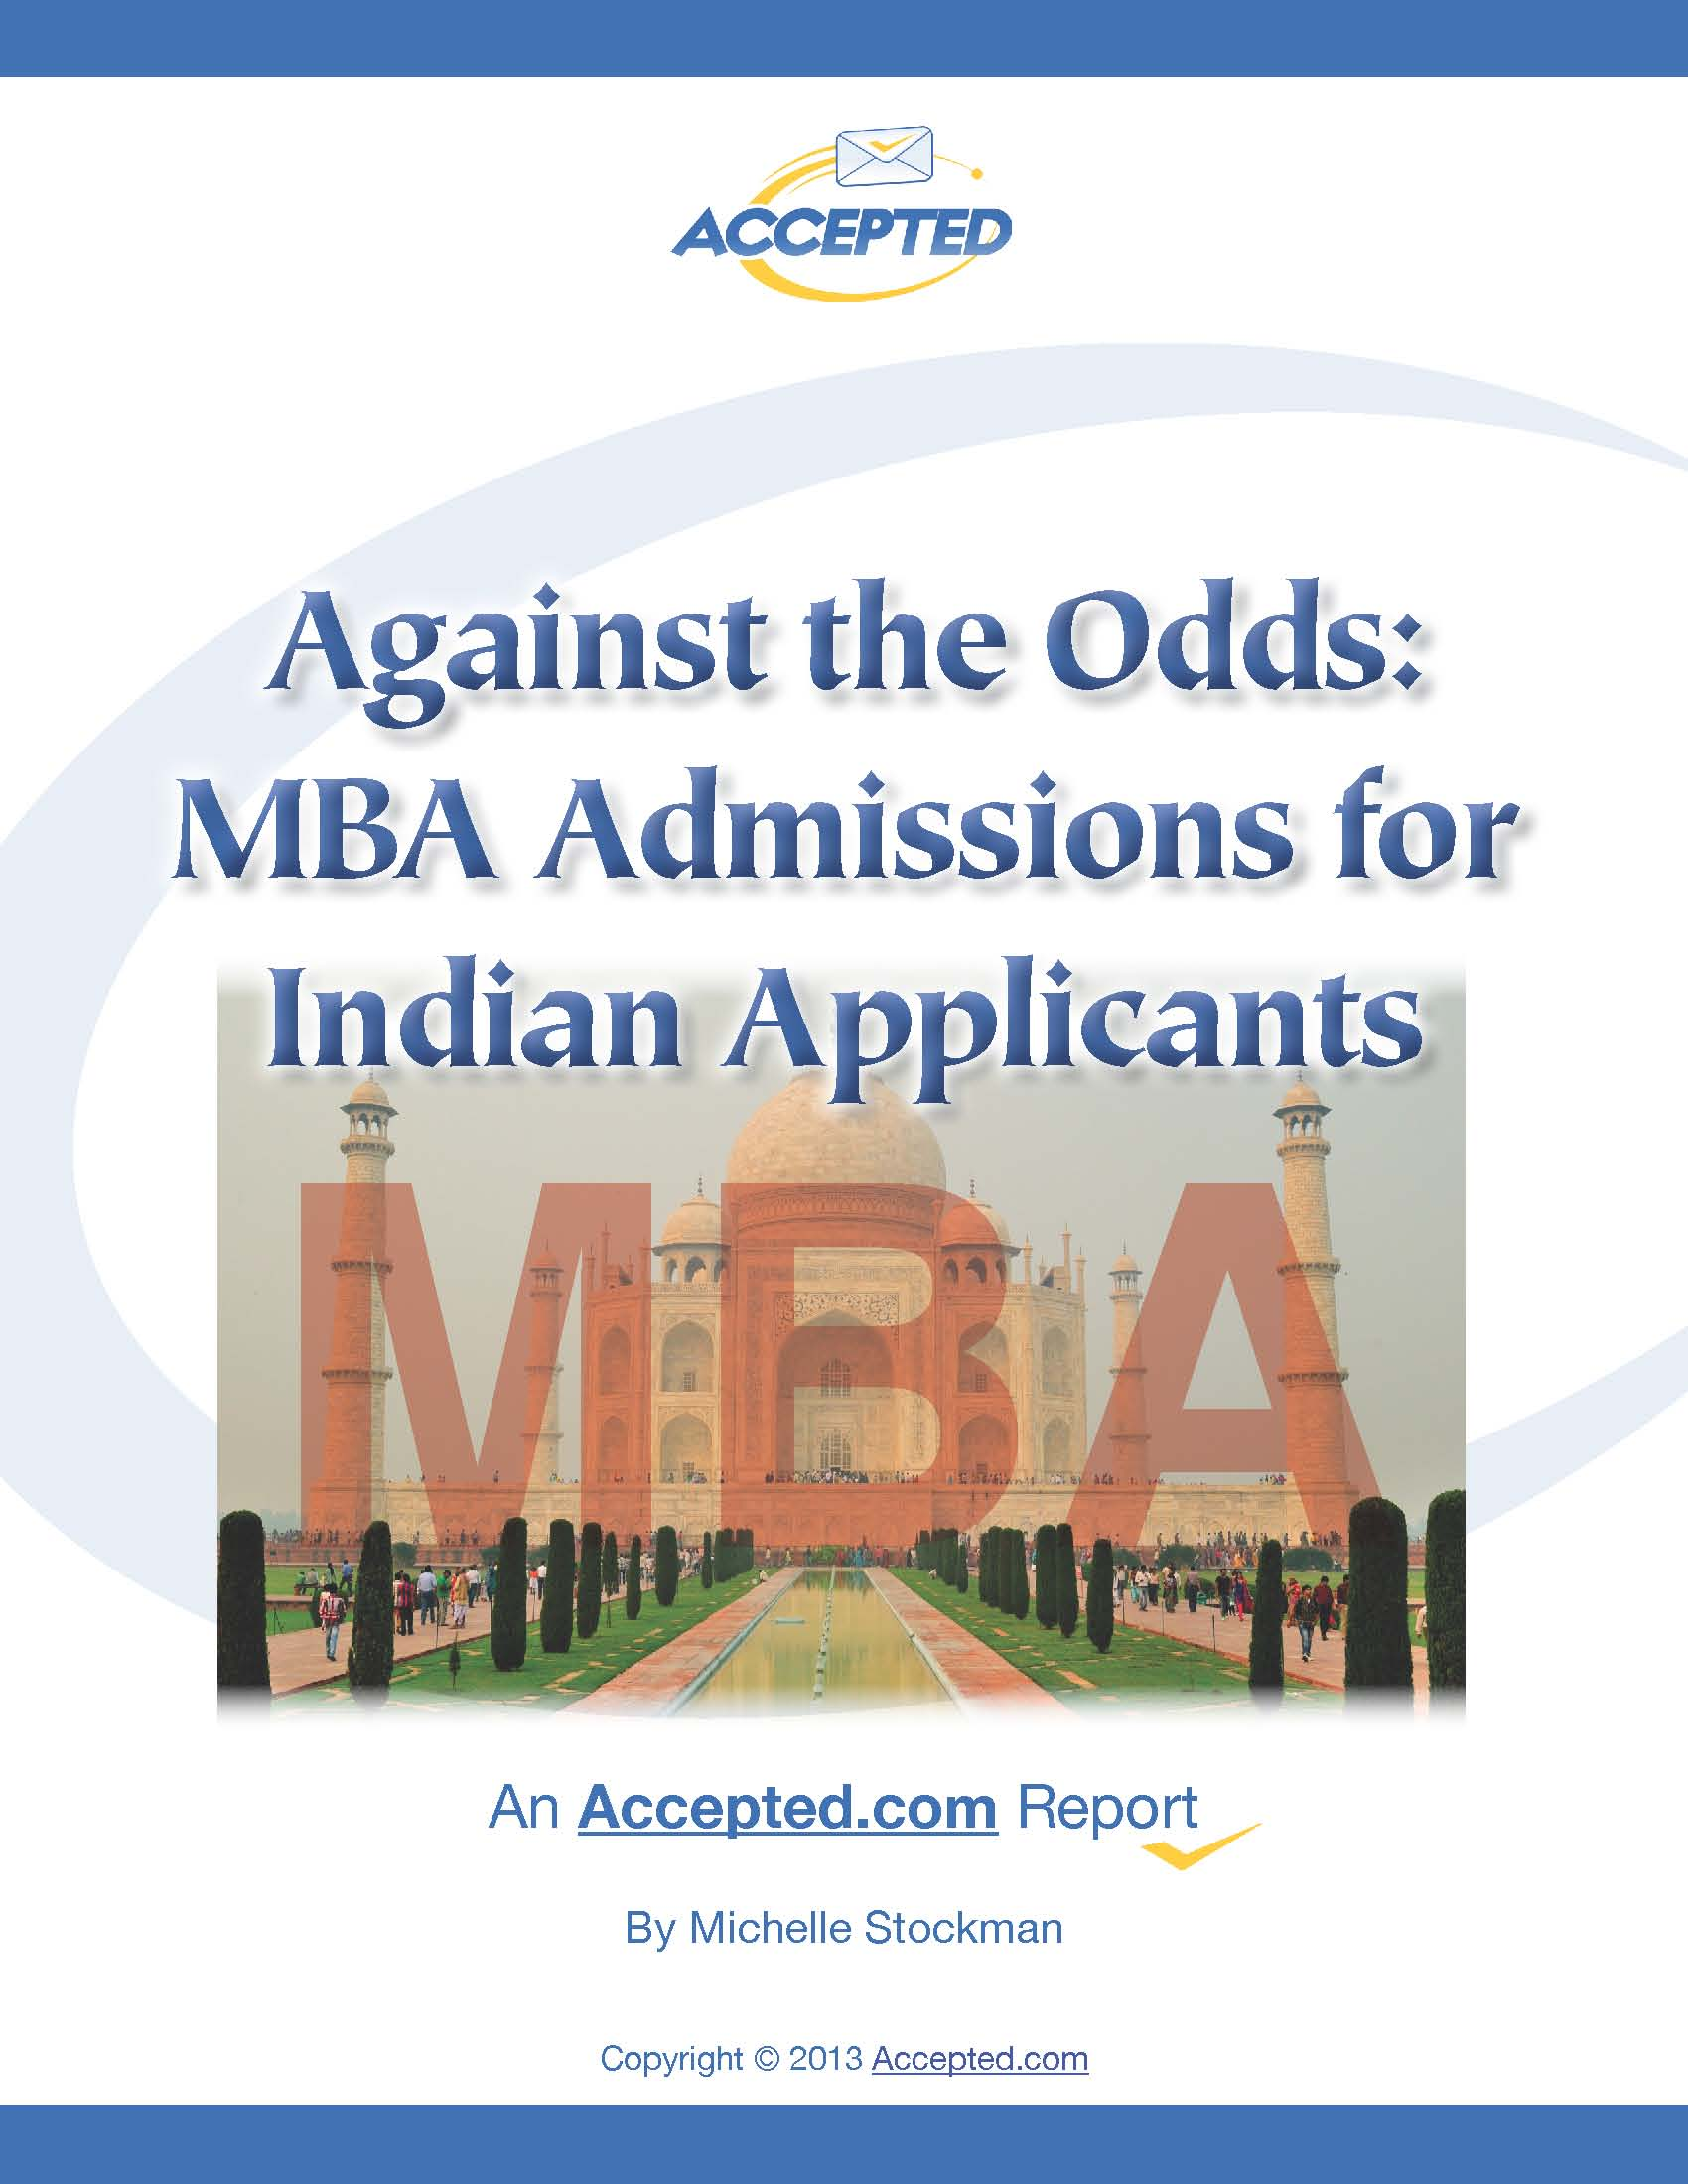 MBA Admissions for Indian Applicants